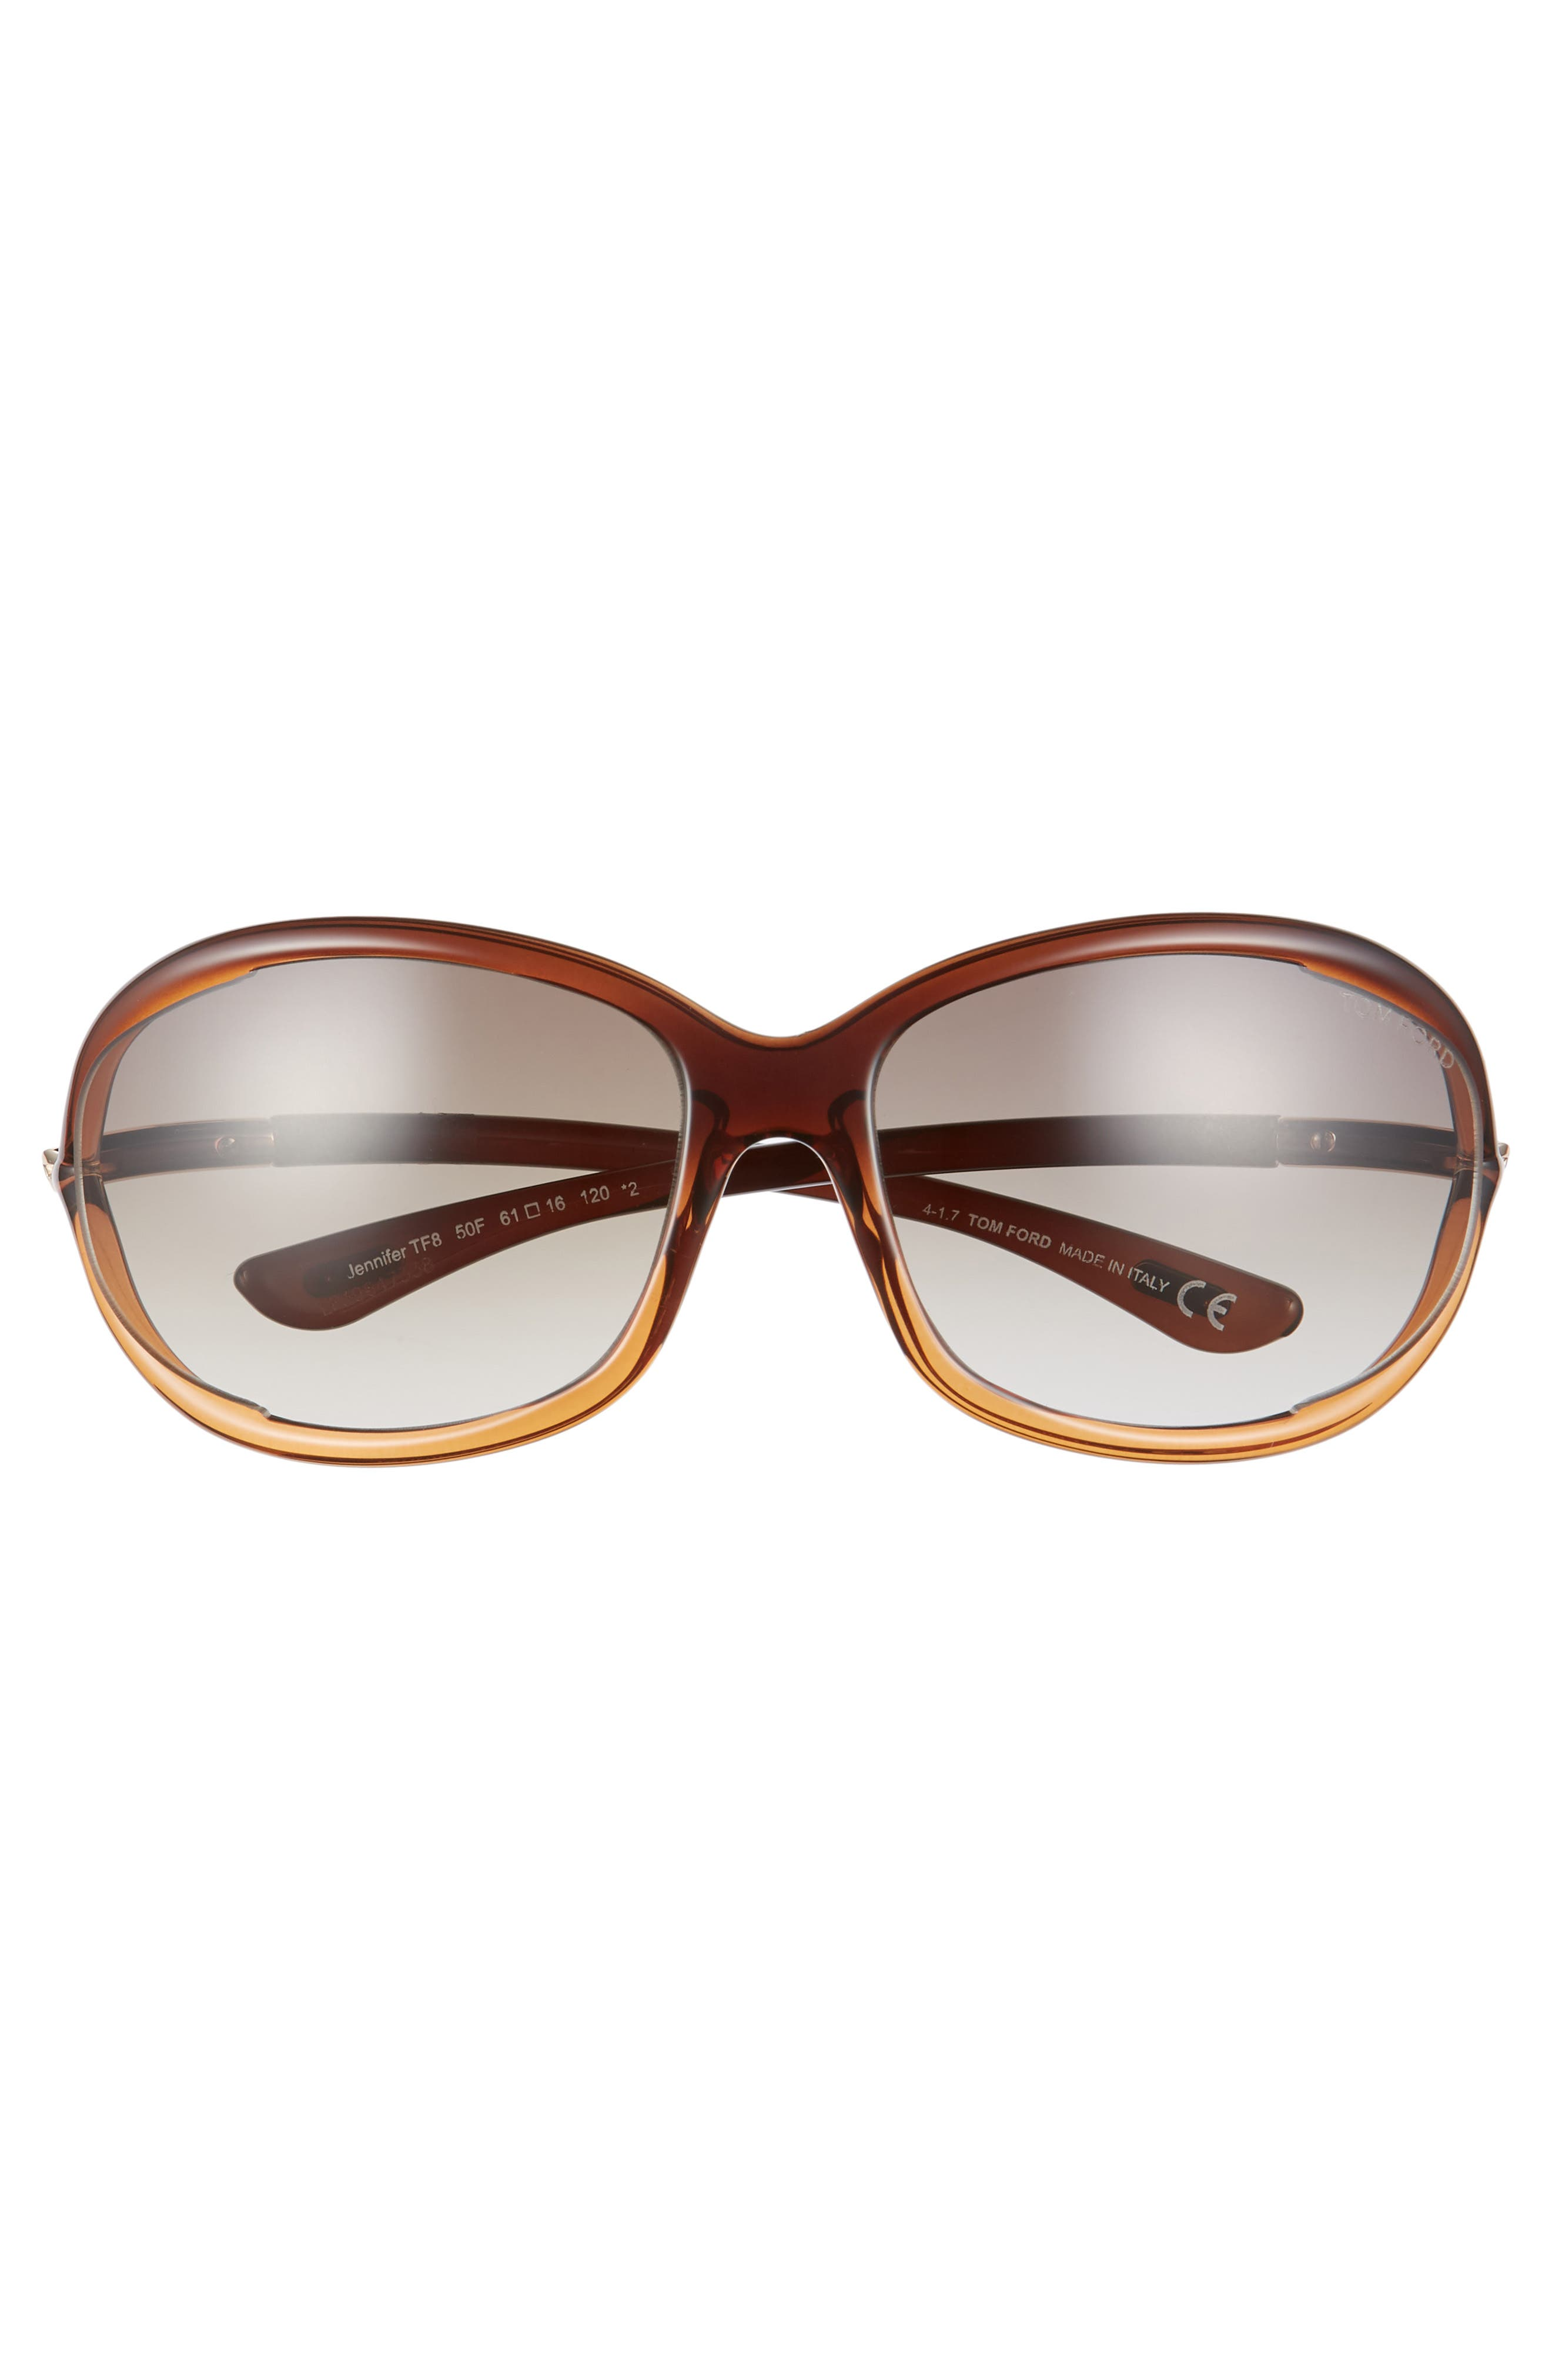 'Jennifer' 61mm Oval Oversize Frame Sunglasses,                             Alternate thumbnail 3, color,                             BROWN GRADIENT/ LIGHT ORANGE